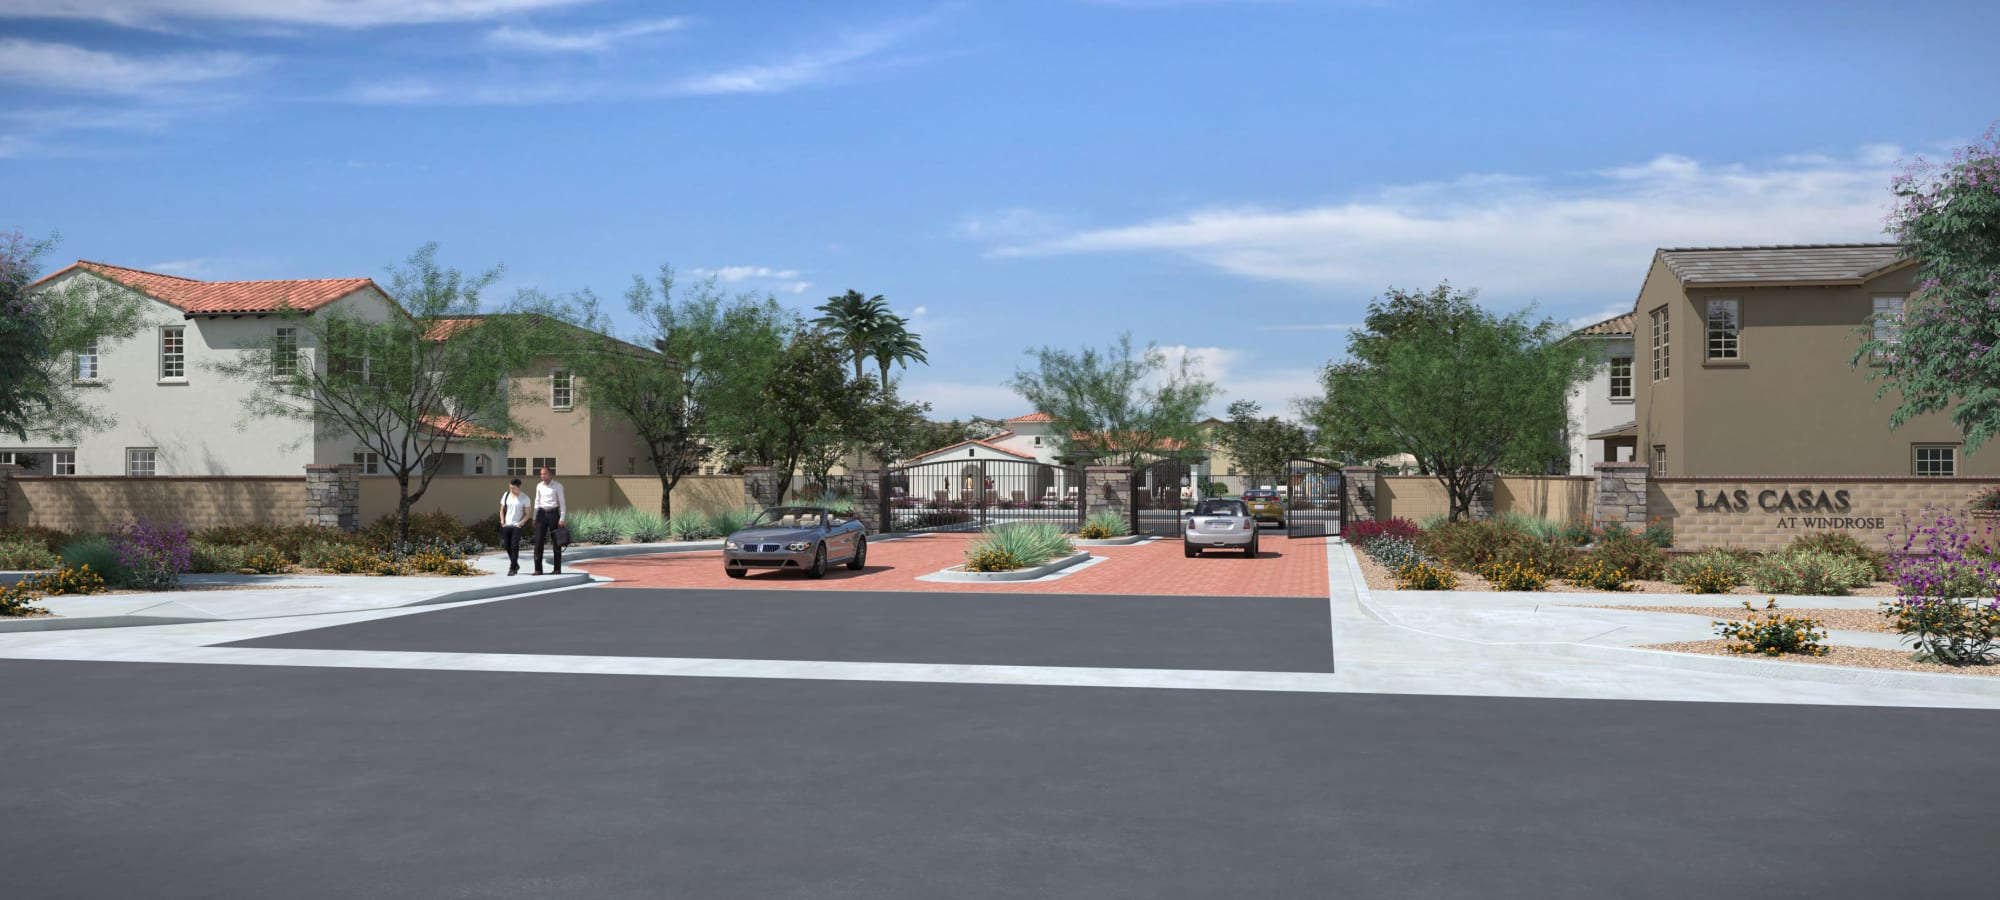 Community Entrance Rendering at Las Casas at Windrose in Litchfield Park, Arizona